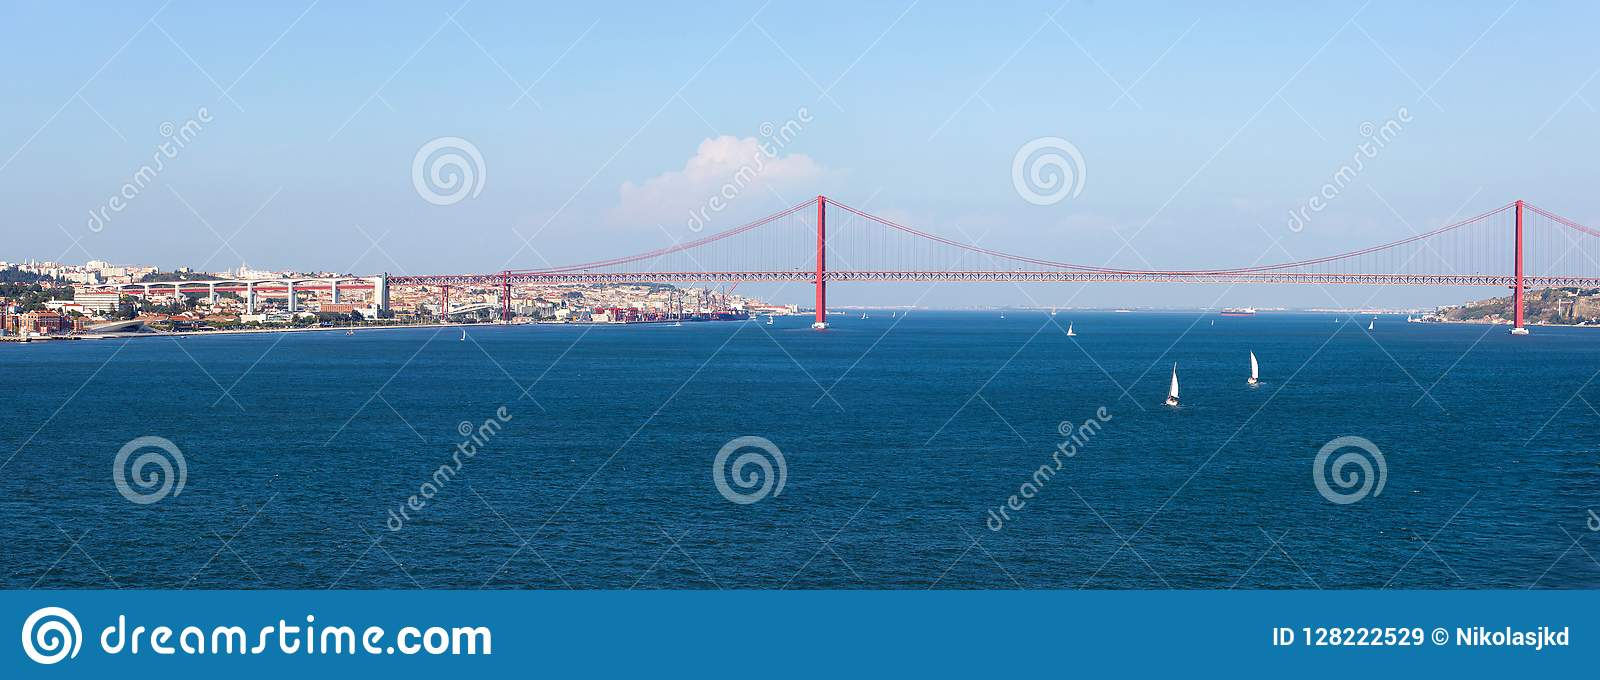 Panorama view over the 25 de Abril Bridge. The bridge is connecting the city of Lisbon to the municipality of Almada